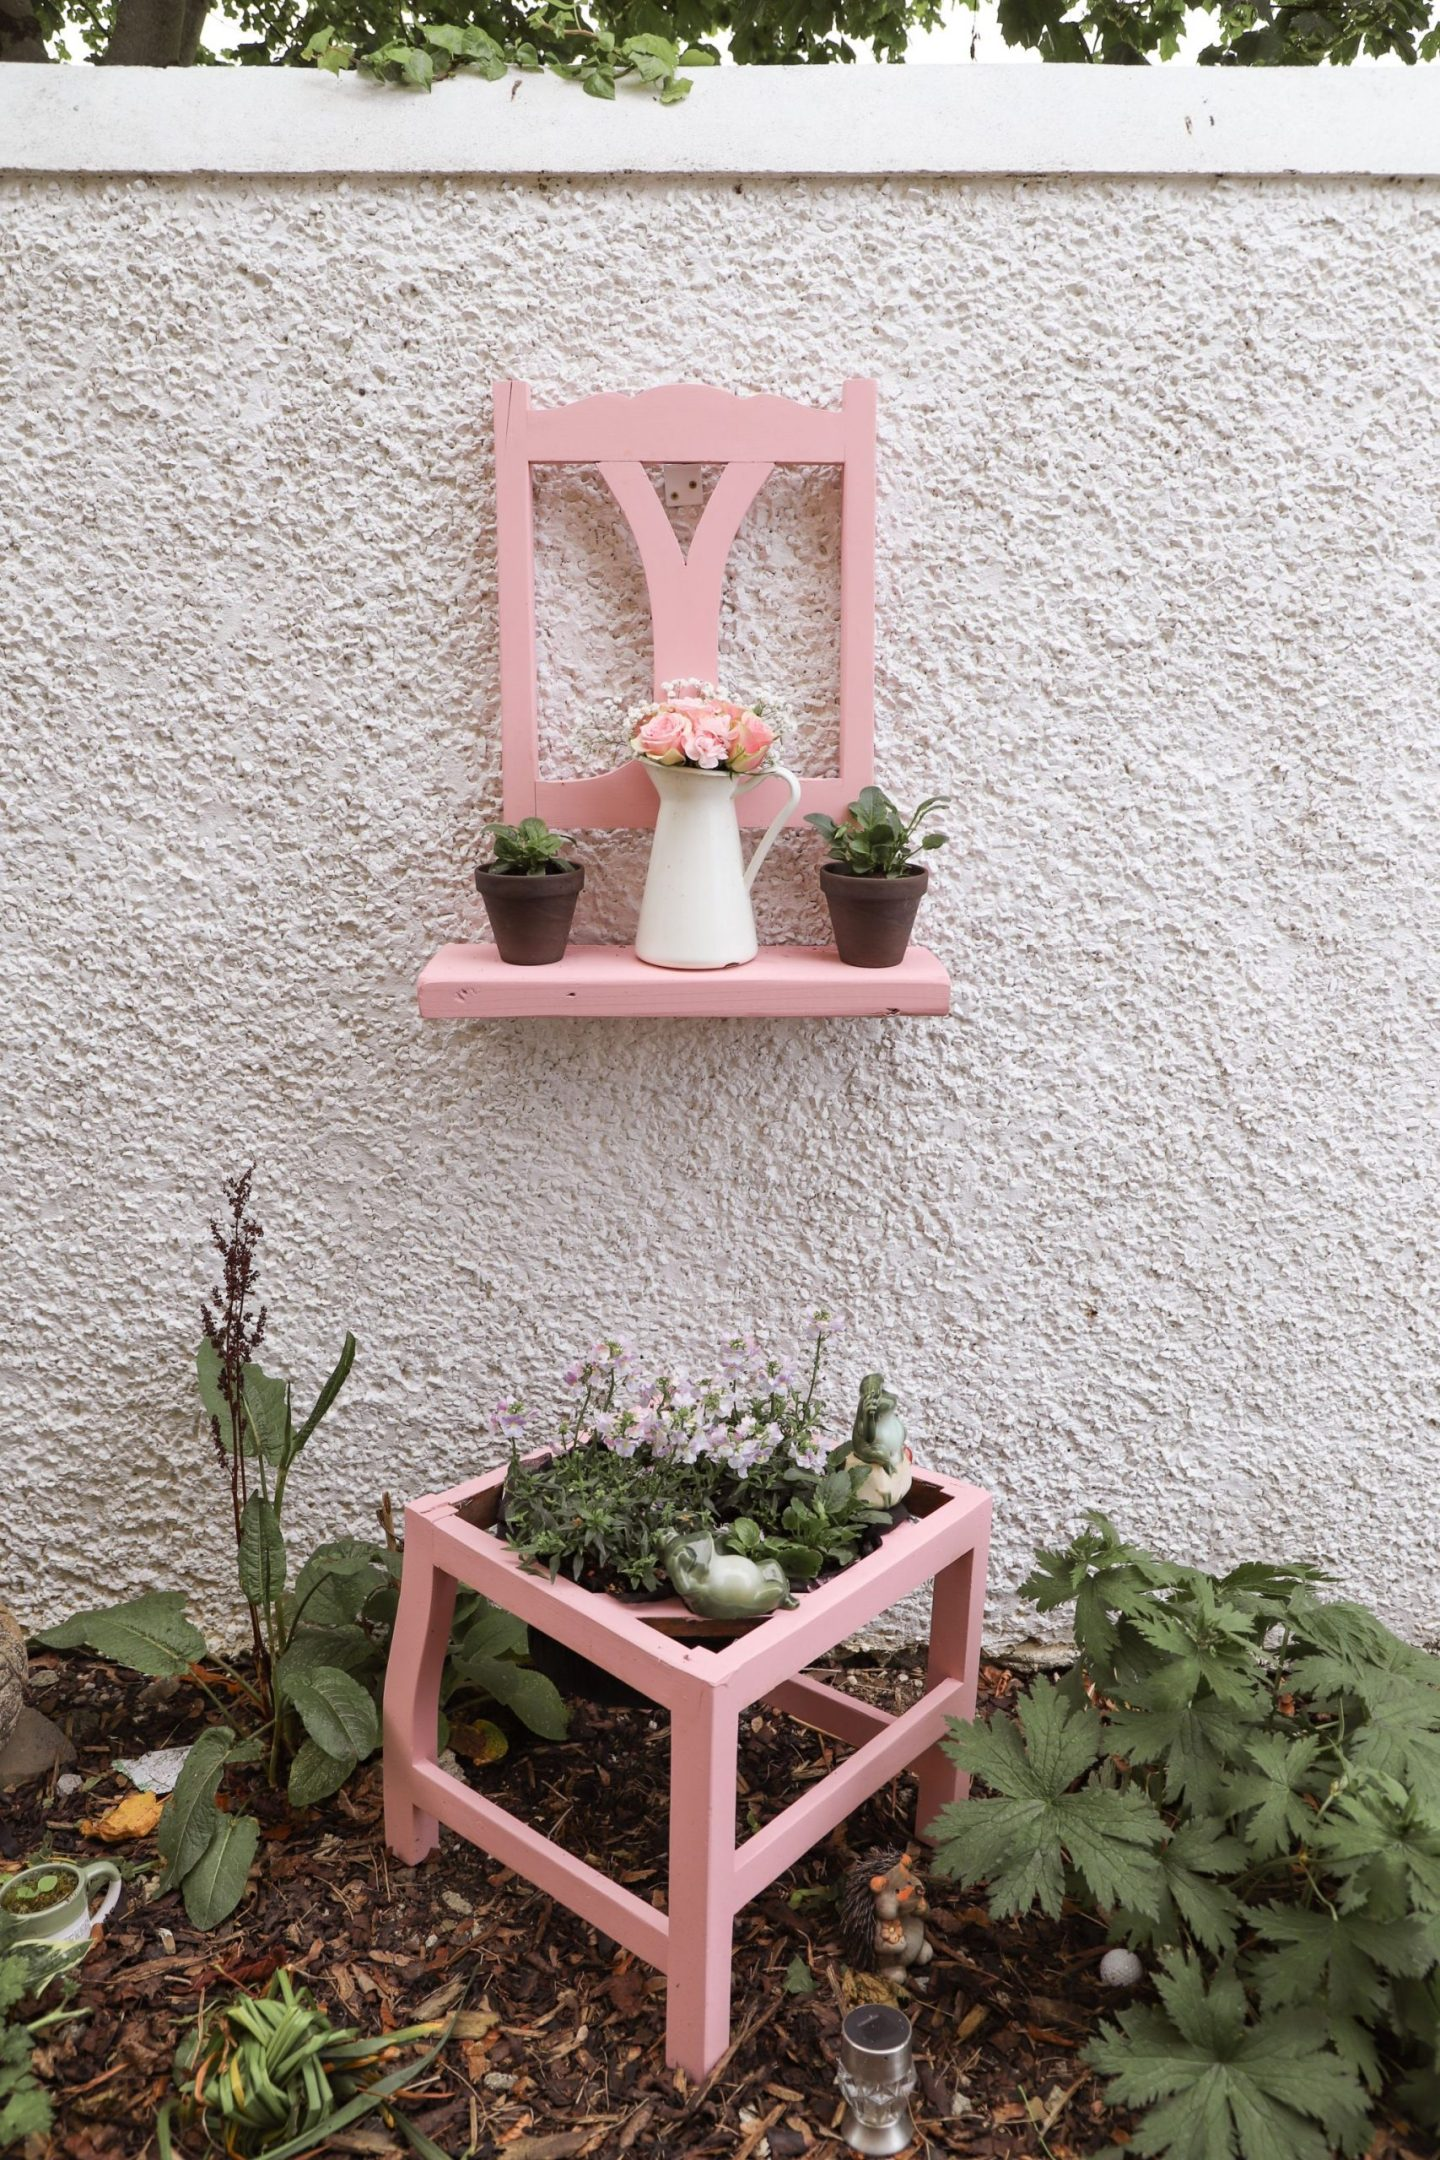 Turn a chair into a flower pot